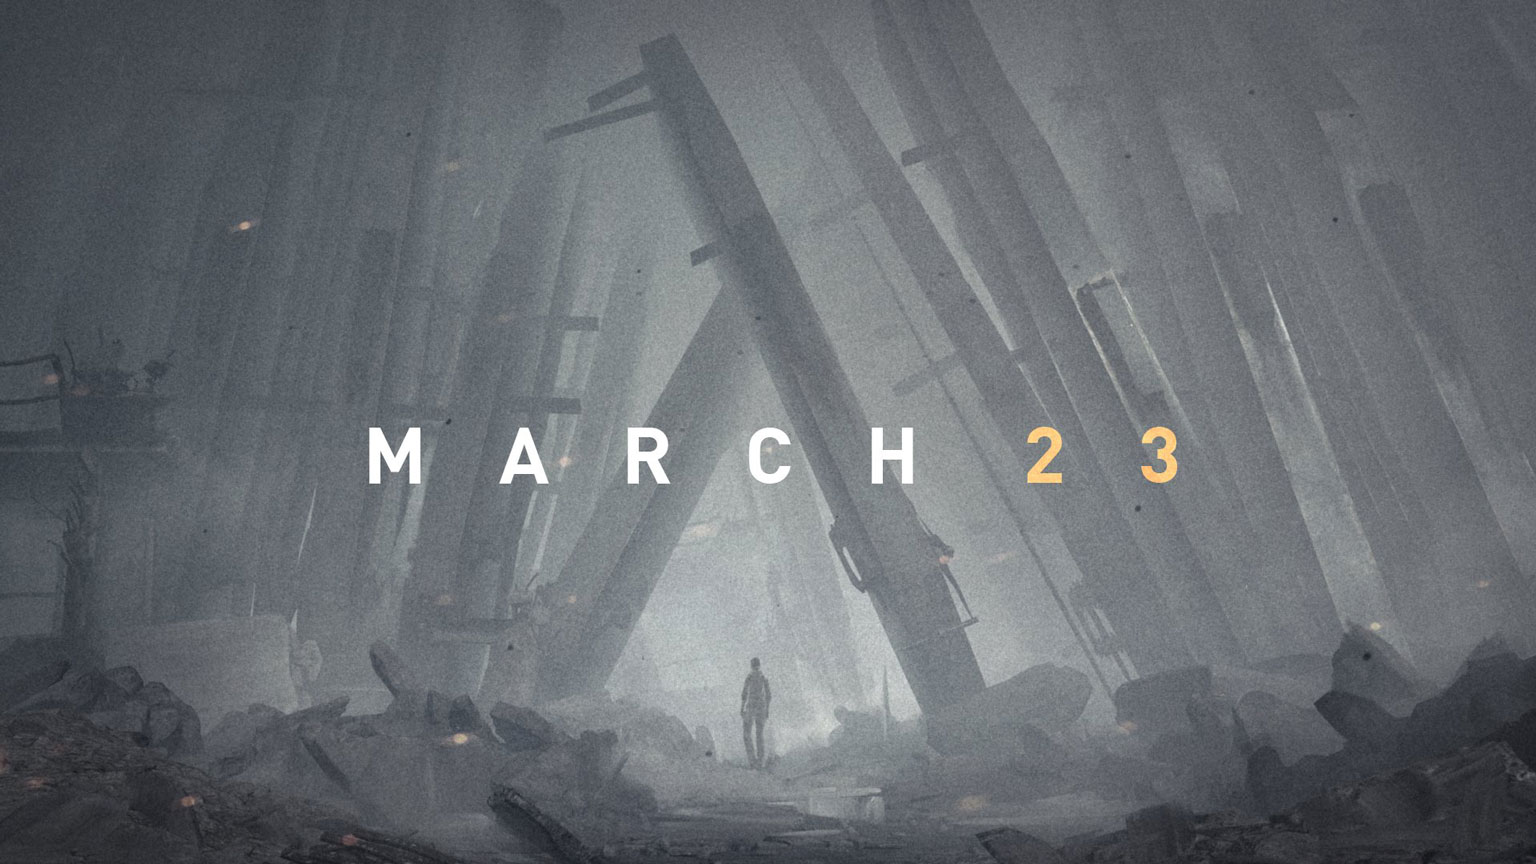 Half-Life: Alyx launches on March, 23rd! - The Ghost Howls